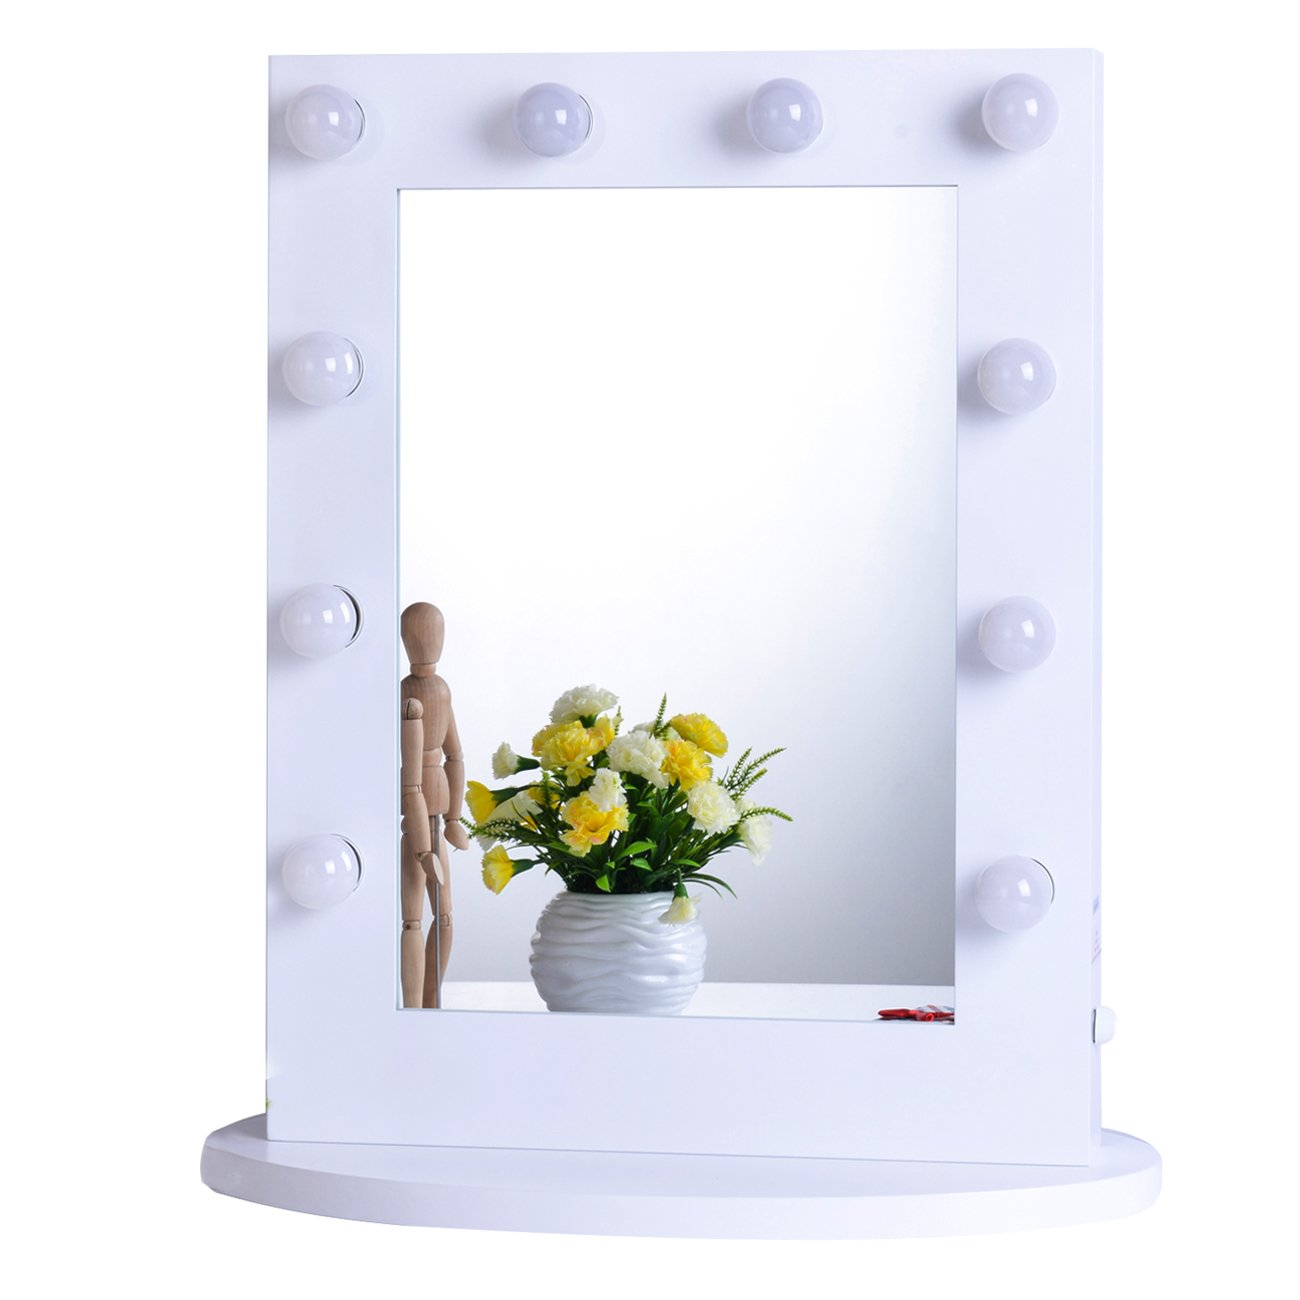 Chende White Hollywood Makeup Vanity Mirror with Light Tabletops Lighted Mirror with Dimmer, LED Illuminated Cosmetic Mirror with LED Dimmable Bulbs, Wall Mounted Lighting Mirror (6550, White) by Chende